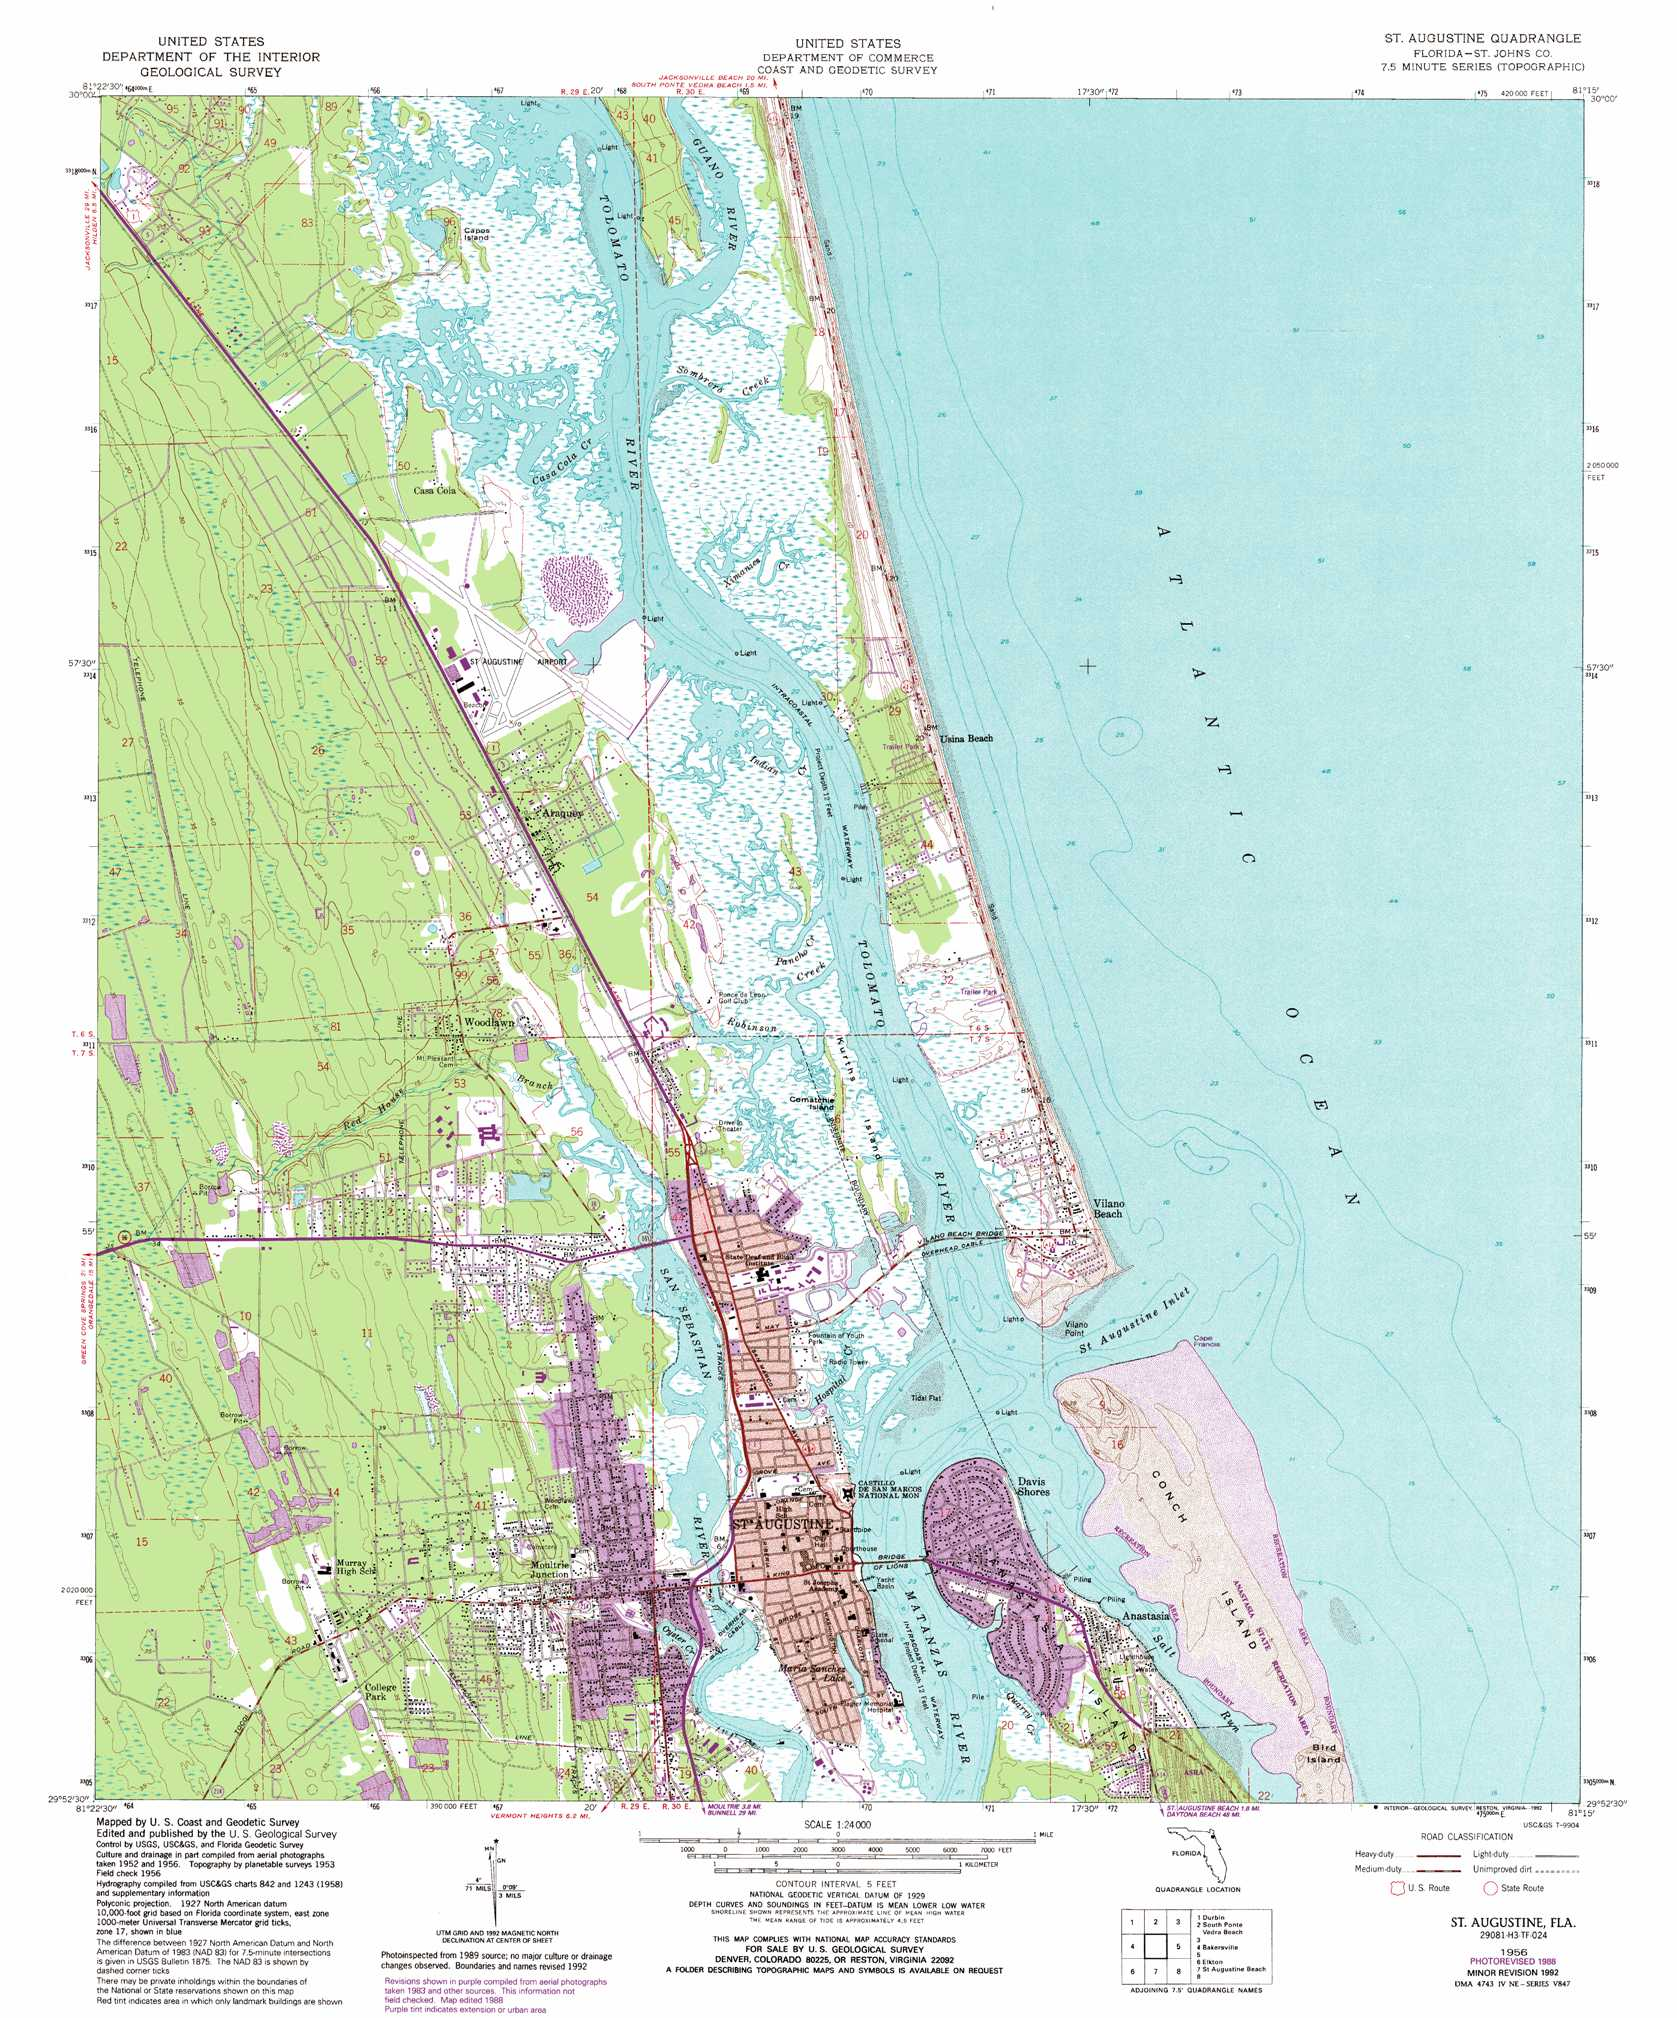 Saint Augustine topographic map, FL - USGS Topo Quad 29081h3 on beaches of st augustine area map, st augustine on map, hotel st. augustine fl map, st. johns county florida map, florida history map, city of st. augustine fl map, lehigh florida map, old st. augustine fl map, sanborn st augustine florida map, red train st augustine map,